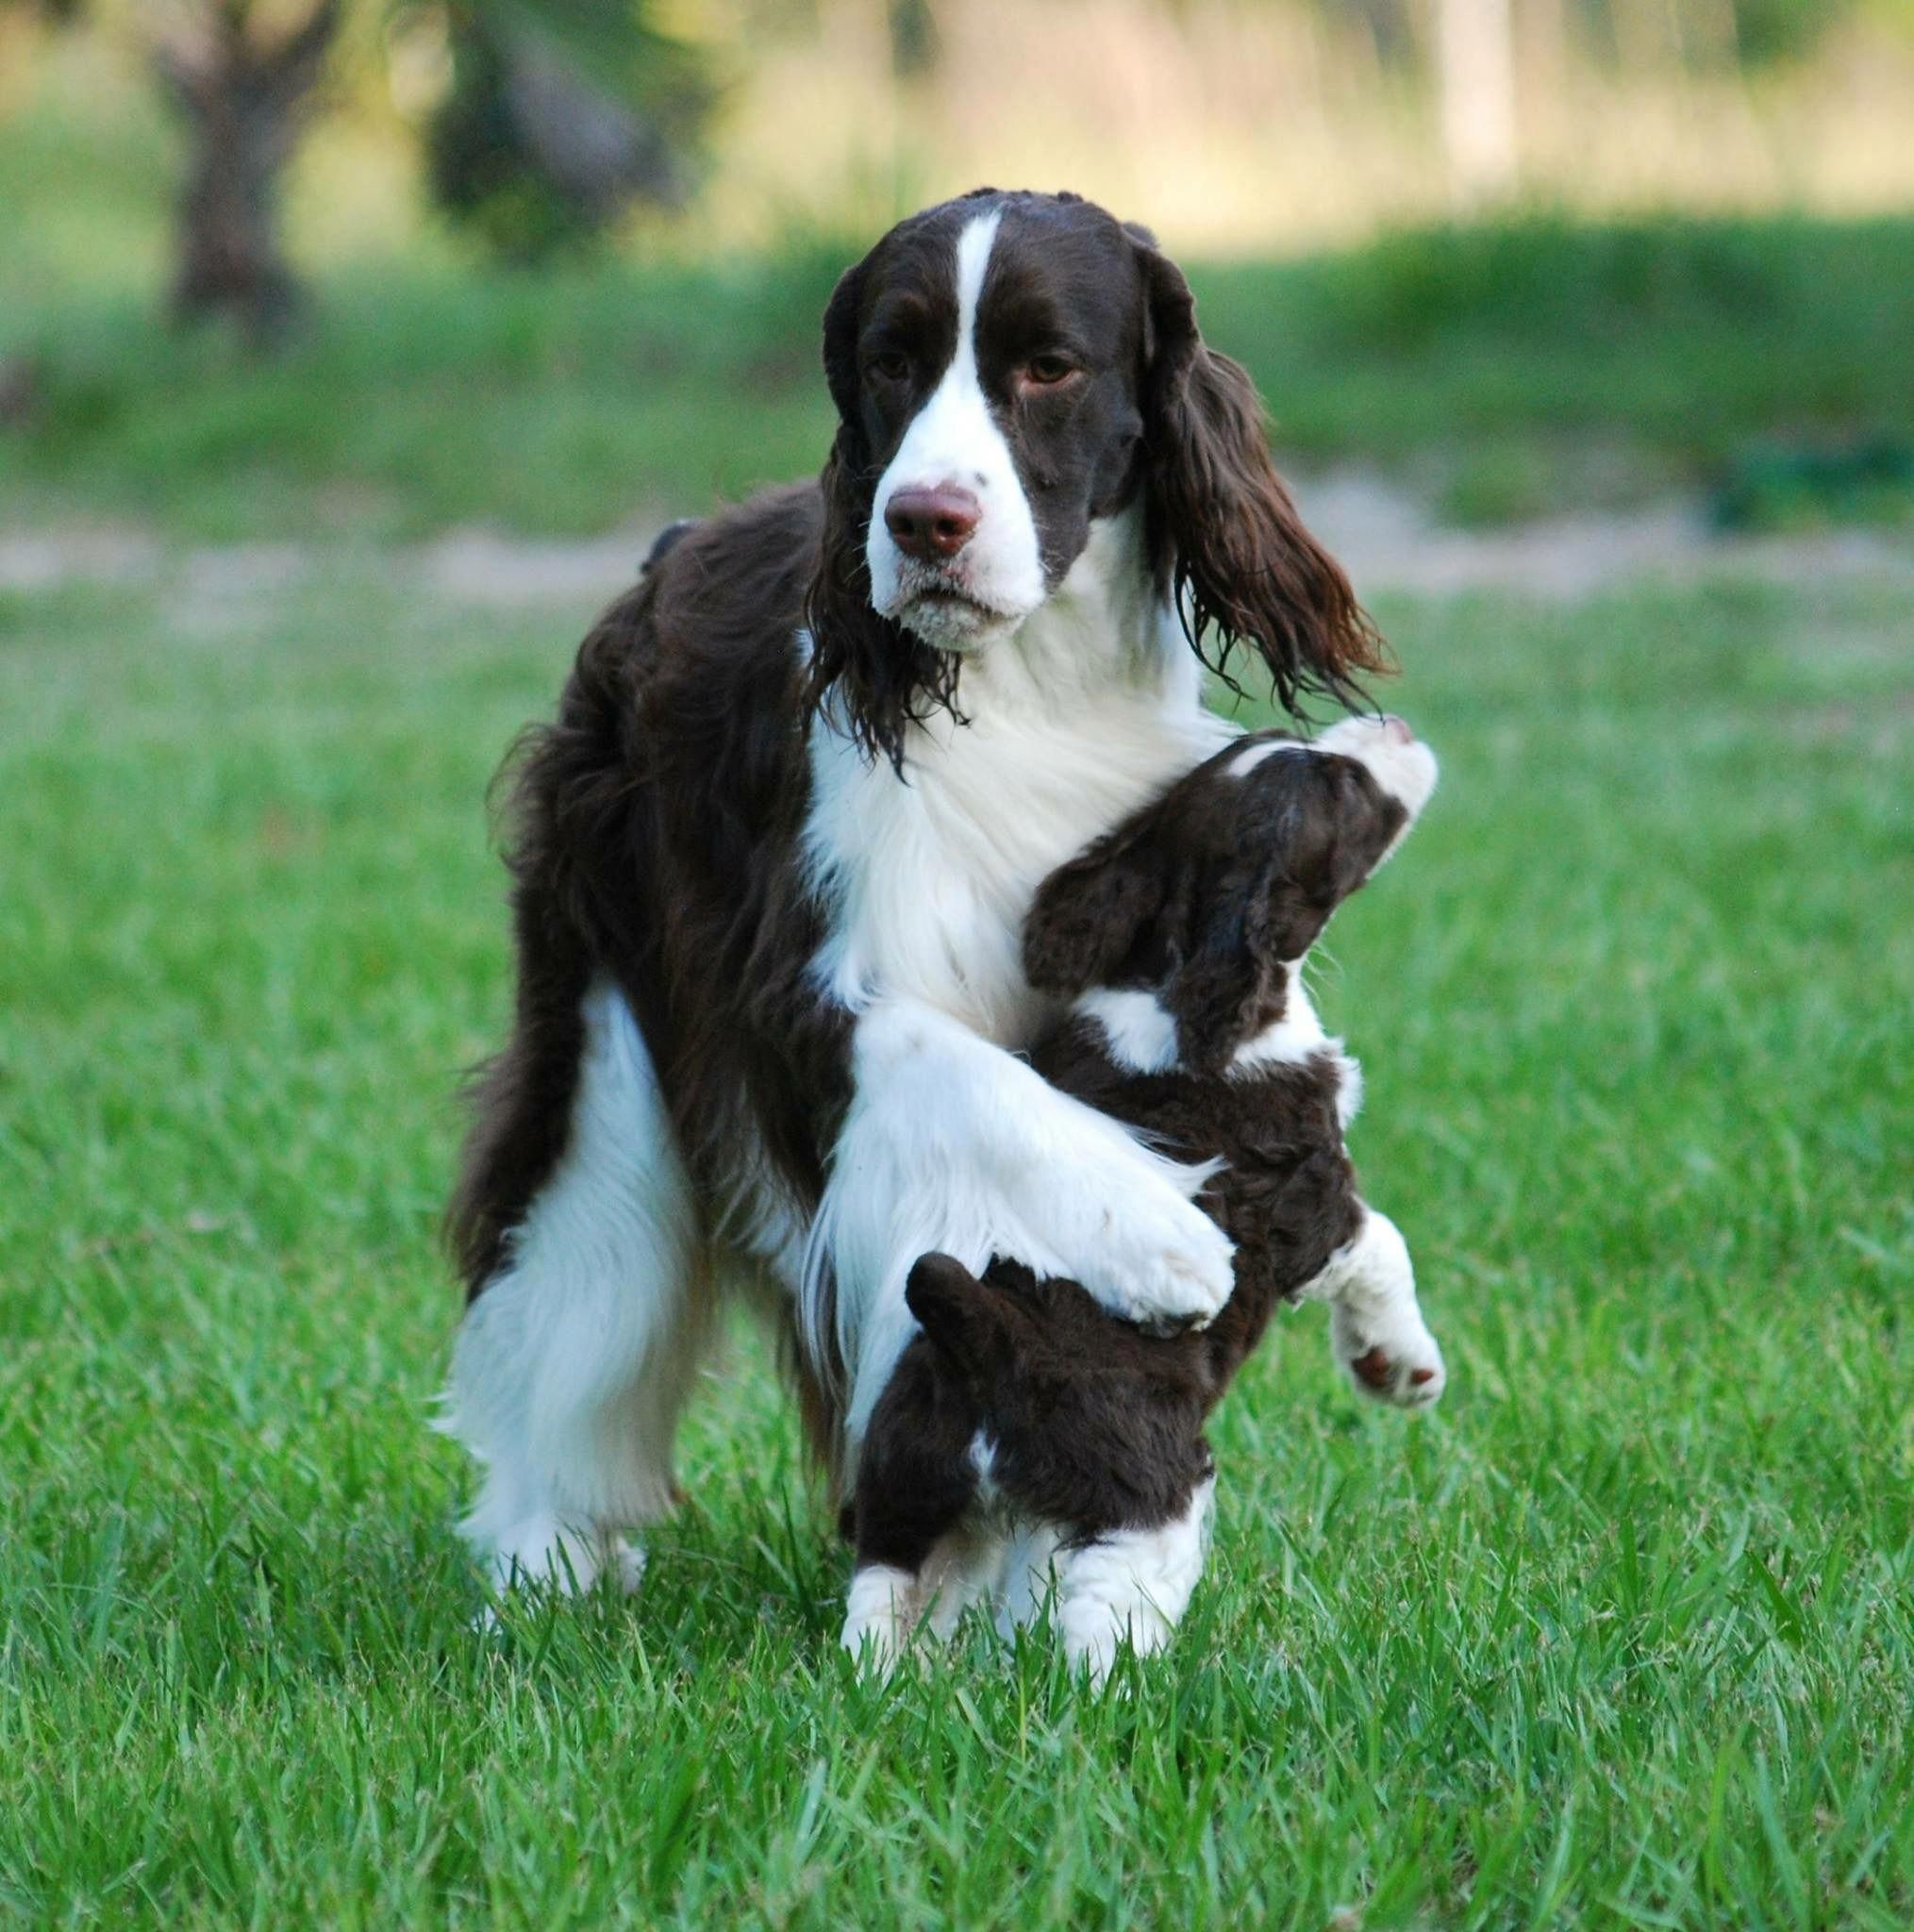 Pin By Christy Rawson On Springers In 2020 Springer Dog Springer Spaniel Welsh Springer Spaniel